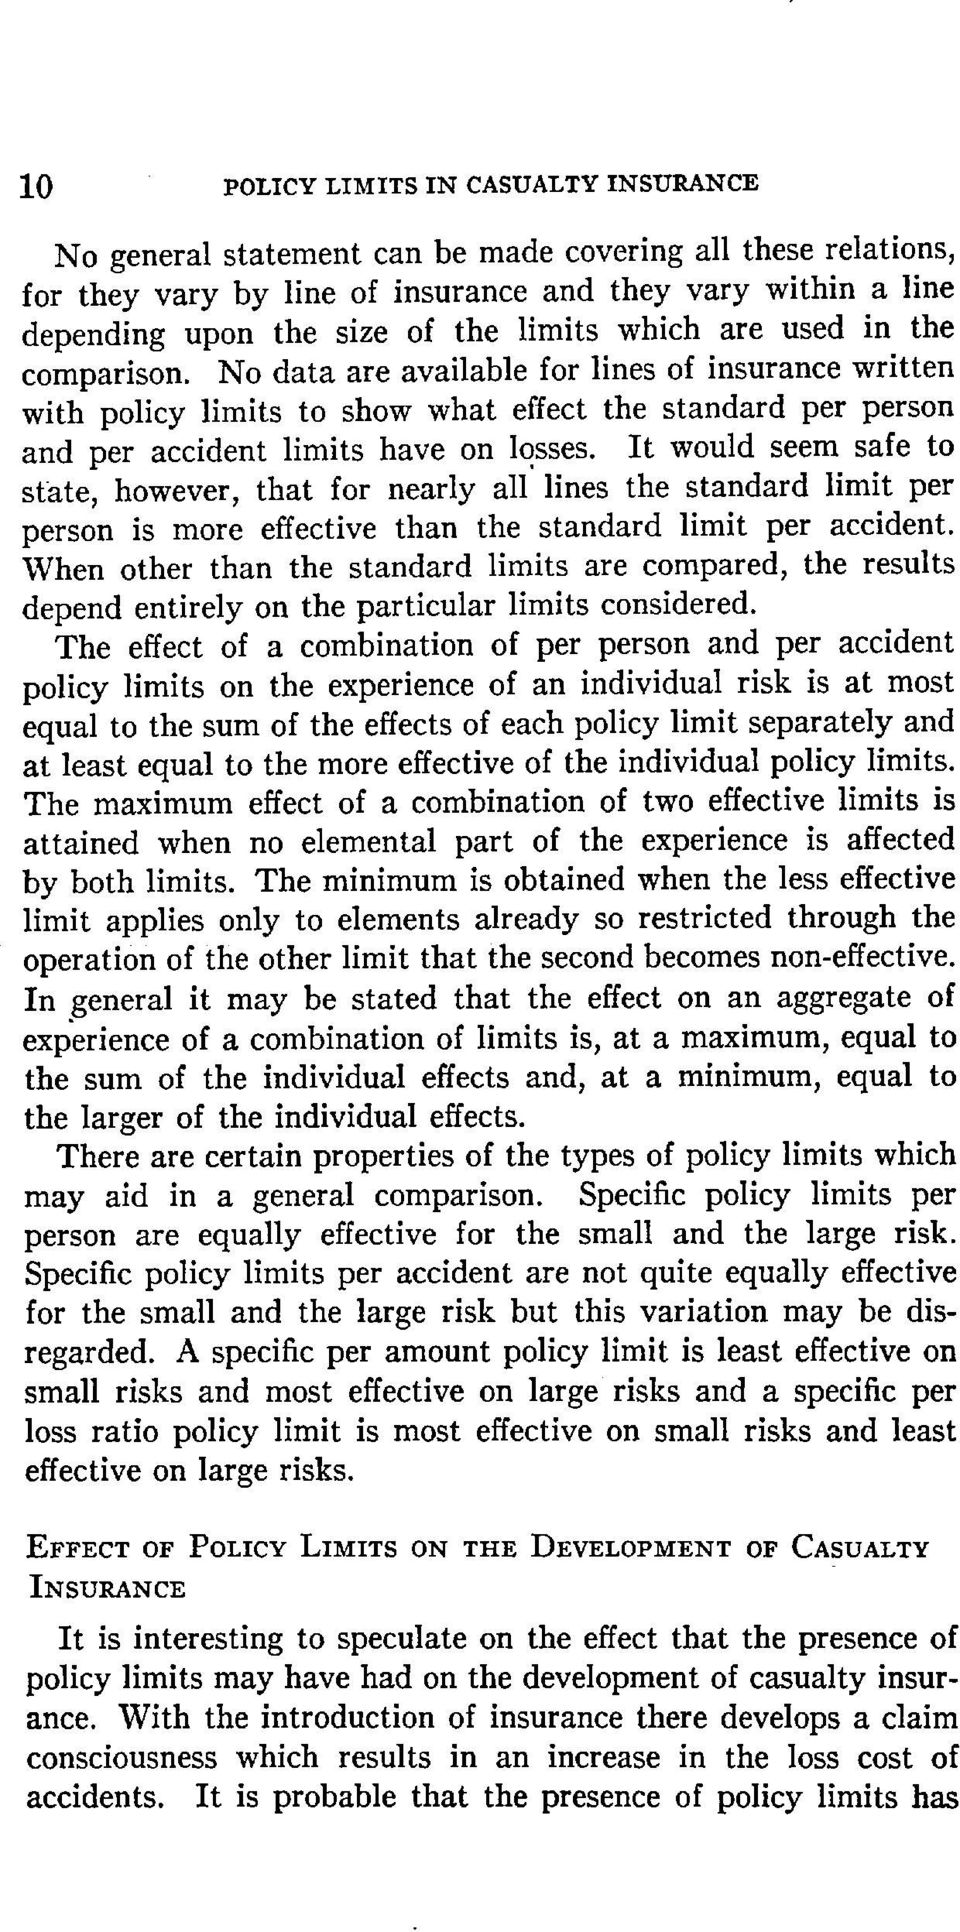 It would seem safe to state, however, that for nearly all' lines the standard limit per person is more effective than the standard limit per accident.